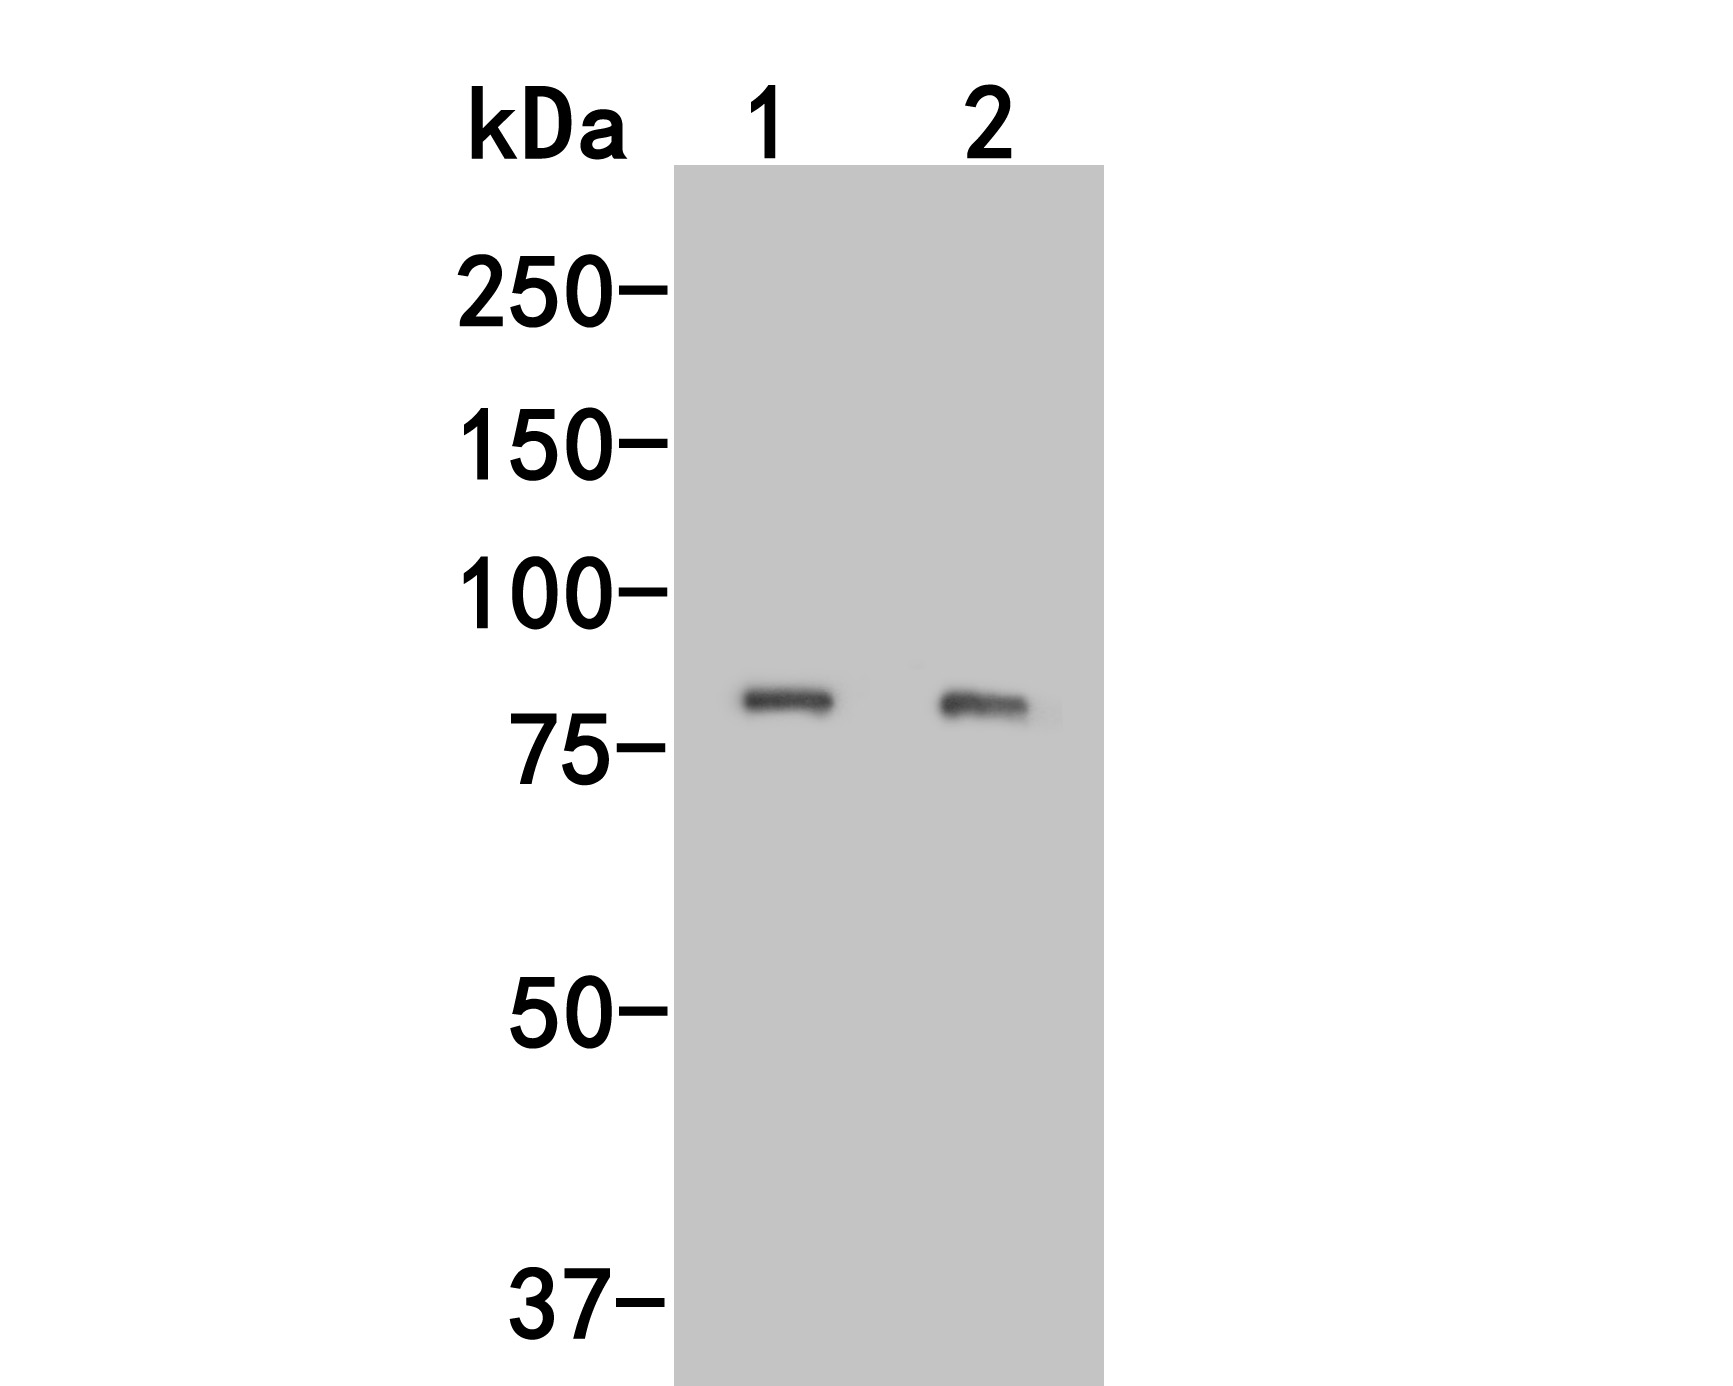 Western blot analysis of LRRN3 on different lysates. Proteins were transferred to a PVDF membrane and blocked with 5% BSA in PBS for 1 hour at room temperature. The primary antibody (M1012-8, 1/500) was used in 5% BSA at room temperature for 2 hours. Goat Anti-Mouse IgG - HRP Secondary Antibody (HA1006) at 1:5,000 dilution was used for 1 hour at room temperature.<br /> Positive control: <br /> Lane 1: SHSY5Ycell lysate<br /> Lane 2: Rat testis tissue lysate